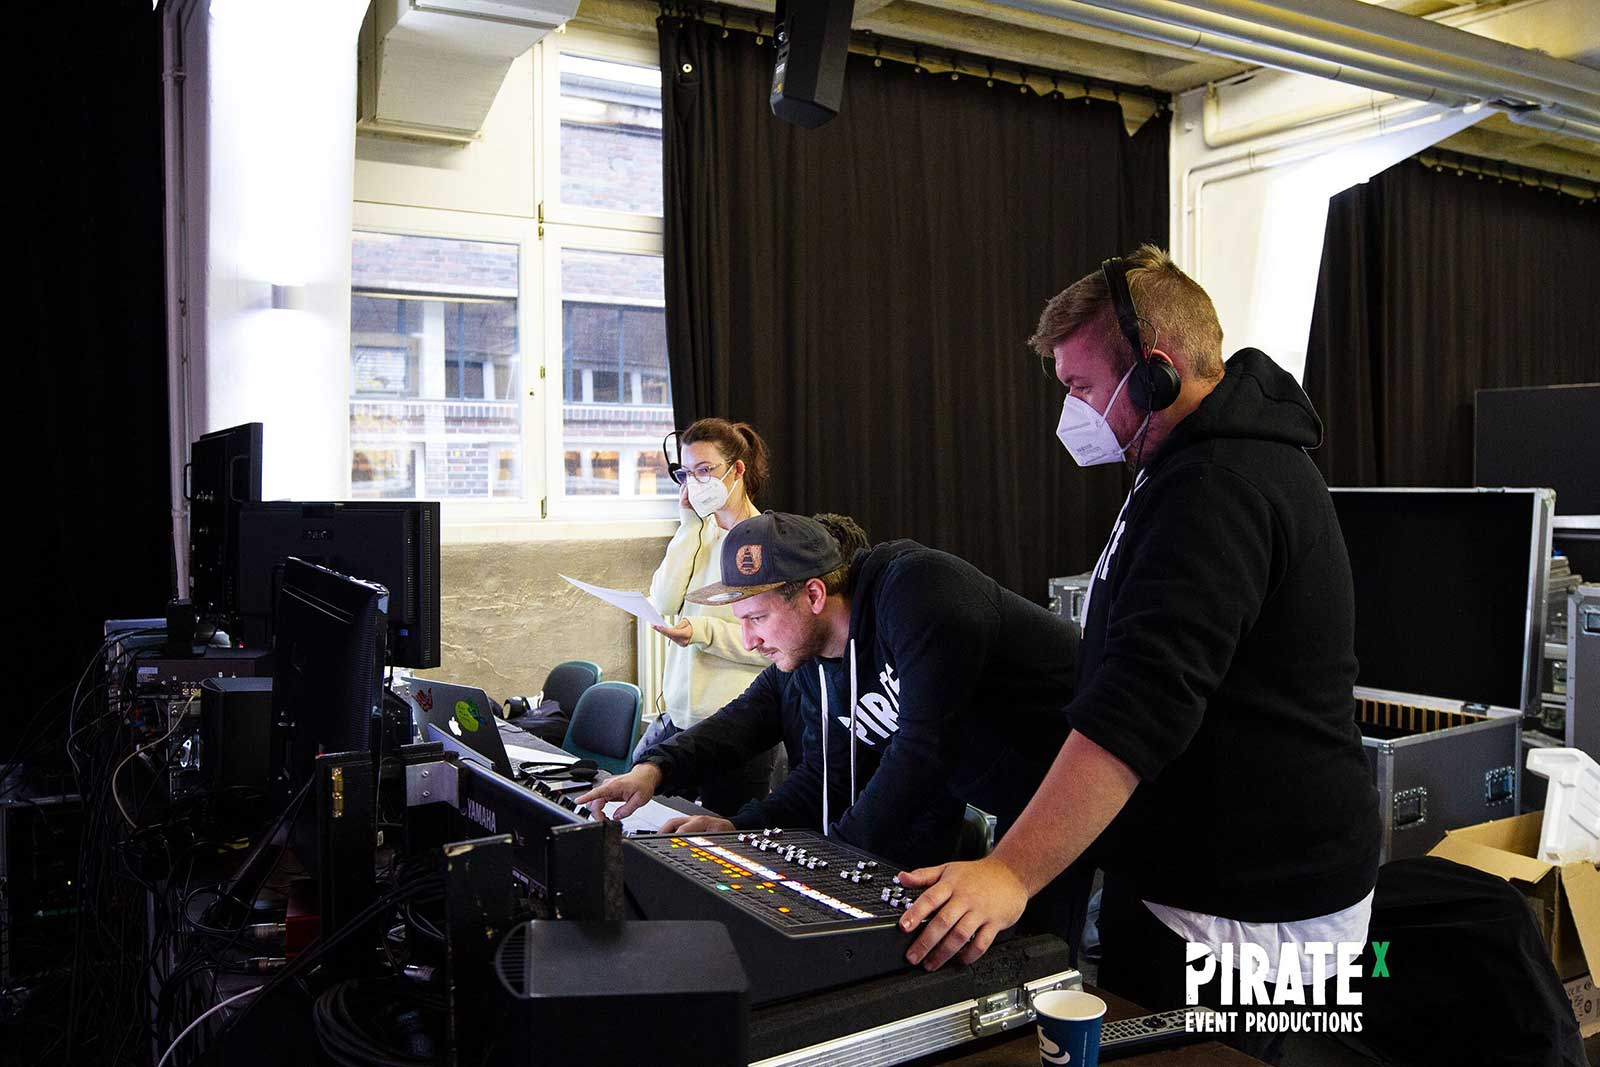 PIRATEx Online Event Production